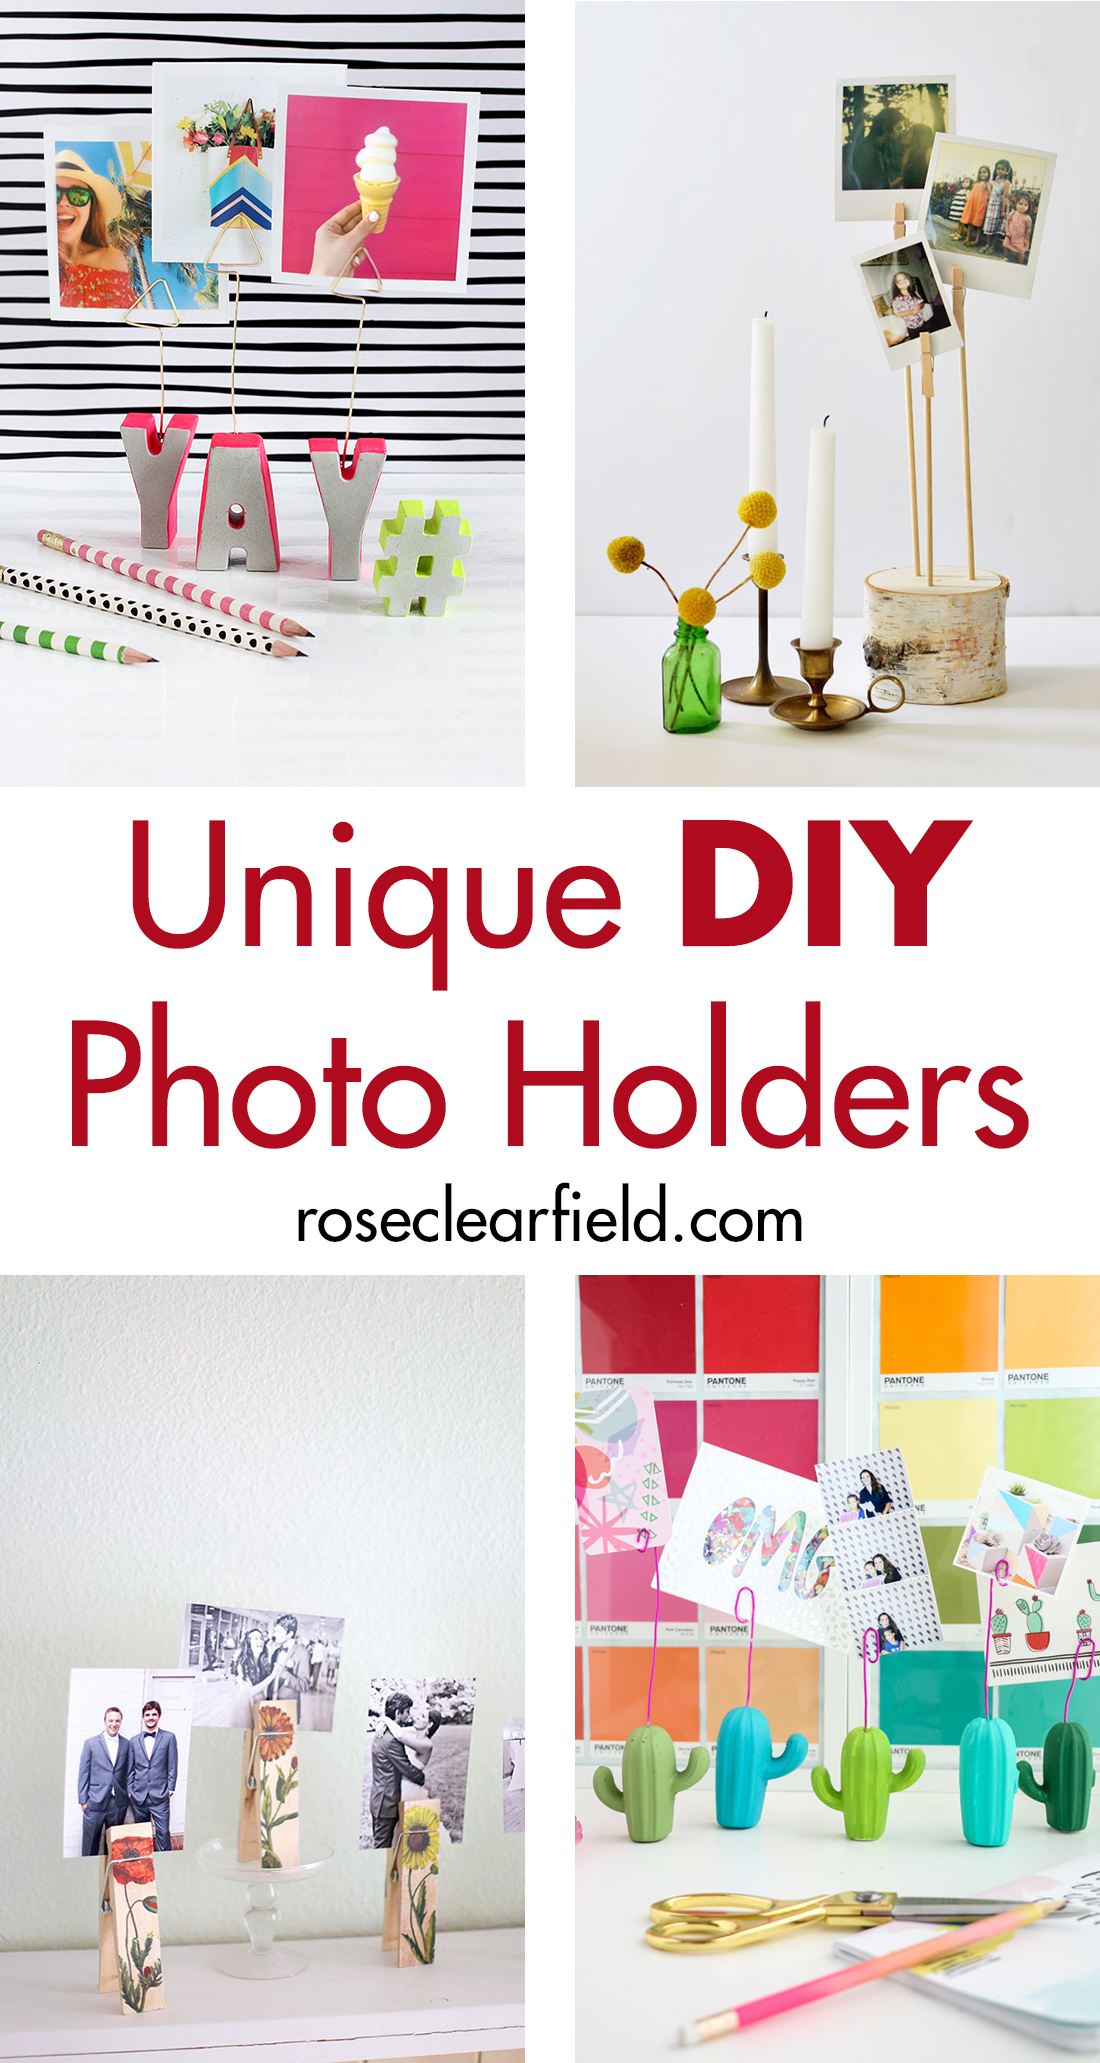 Unique DIY photo holders. Add a pop of color or personalized touch to your home decor! #DIY #homedecor #photoholders | https://www.roseclearfield.com